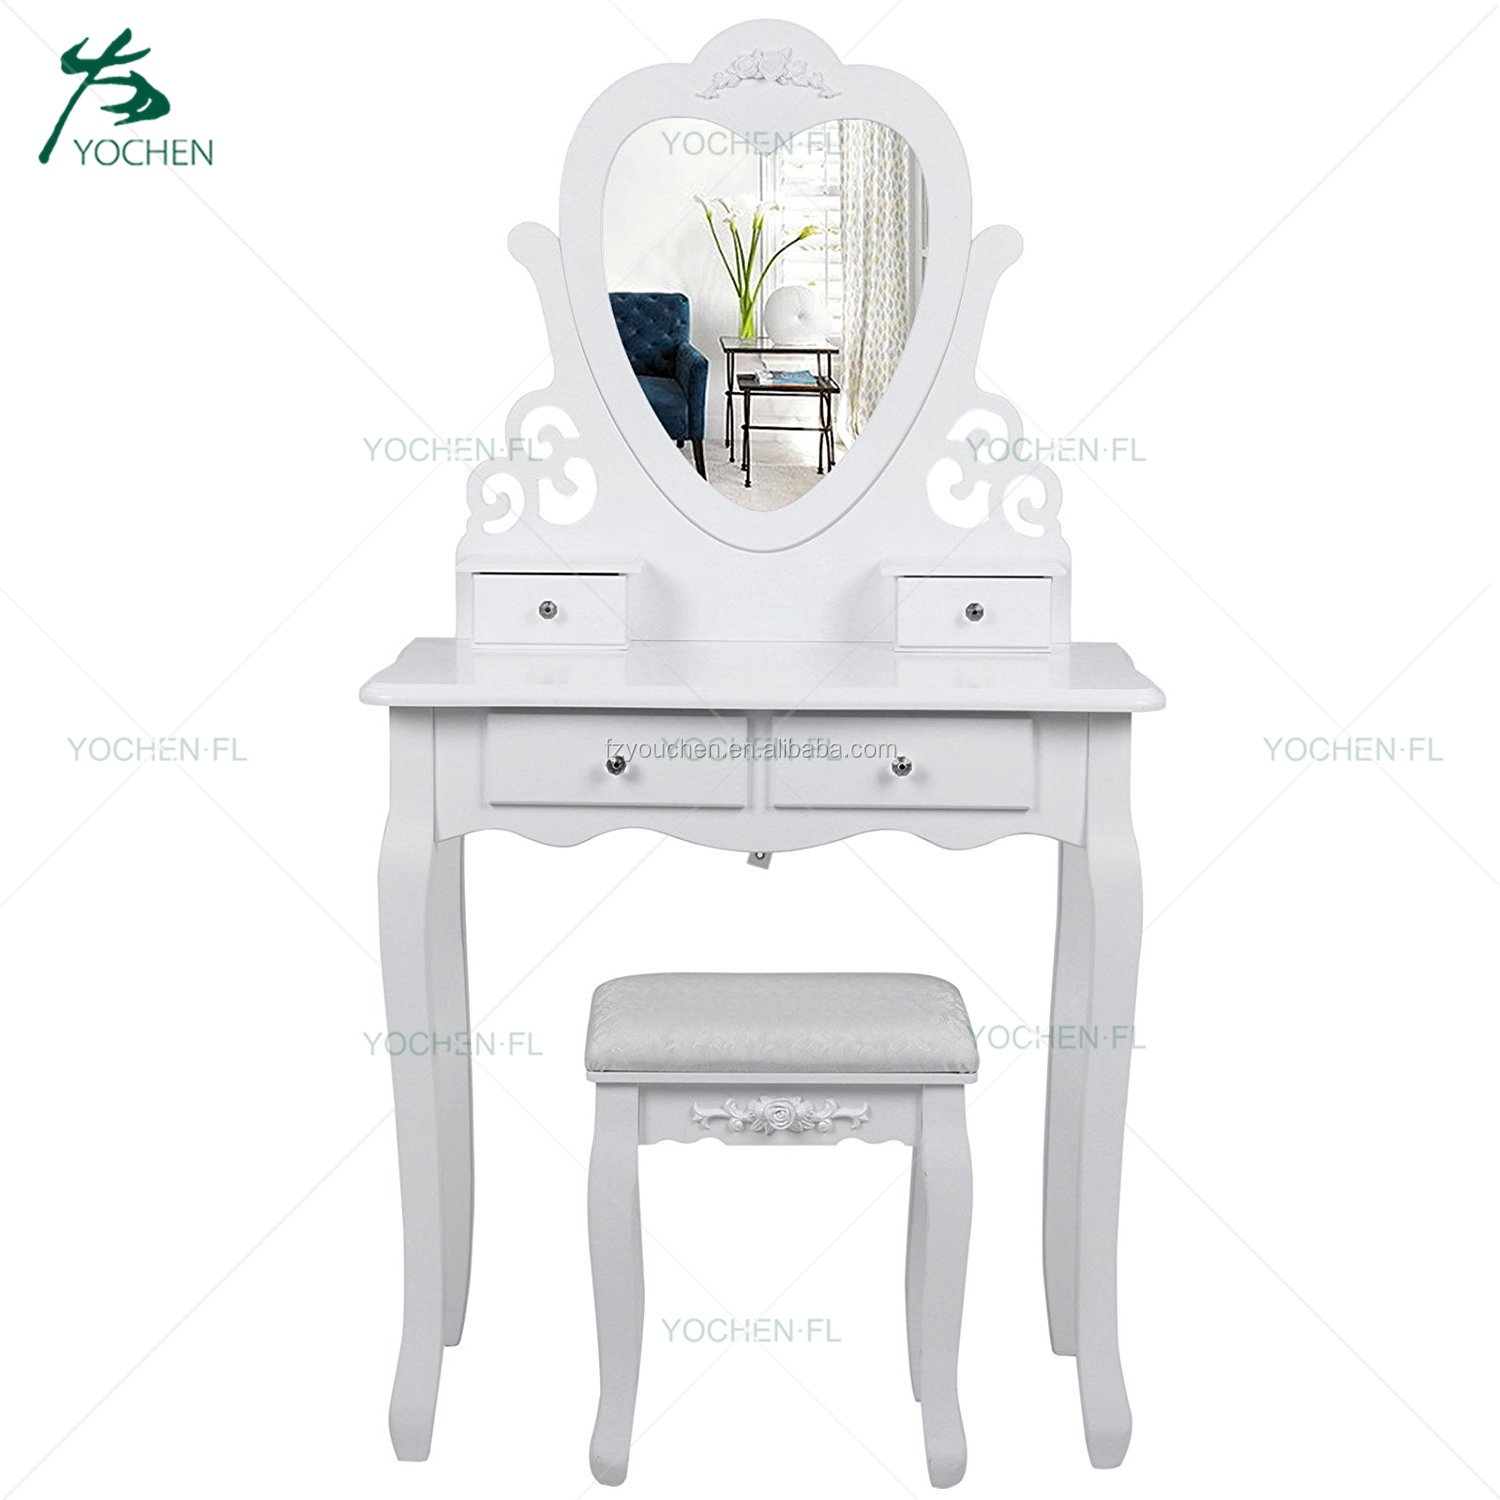 shipping full store furniture rugs dresser closeout goods outdoor decor locations coupons size sale ikea bedroom kitchen maxx servers canada home providence kohls dorchester furnitu tj of discount dressers free